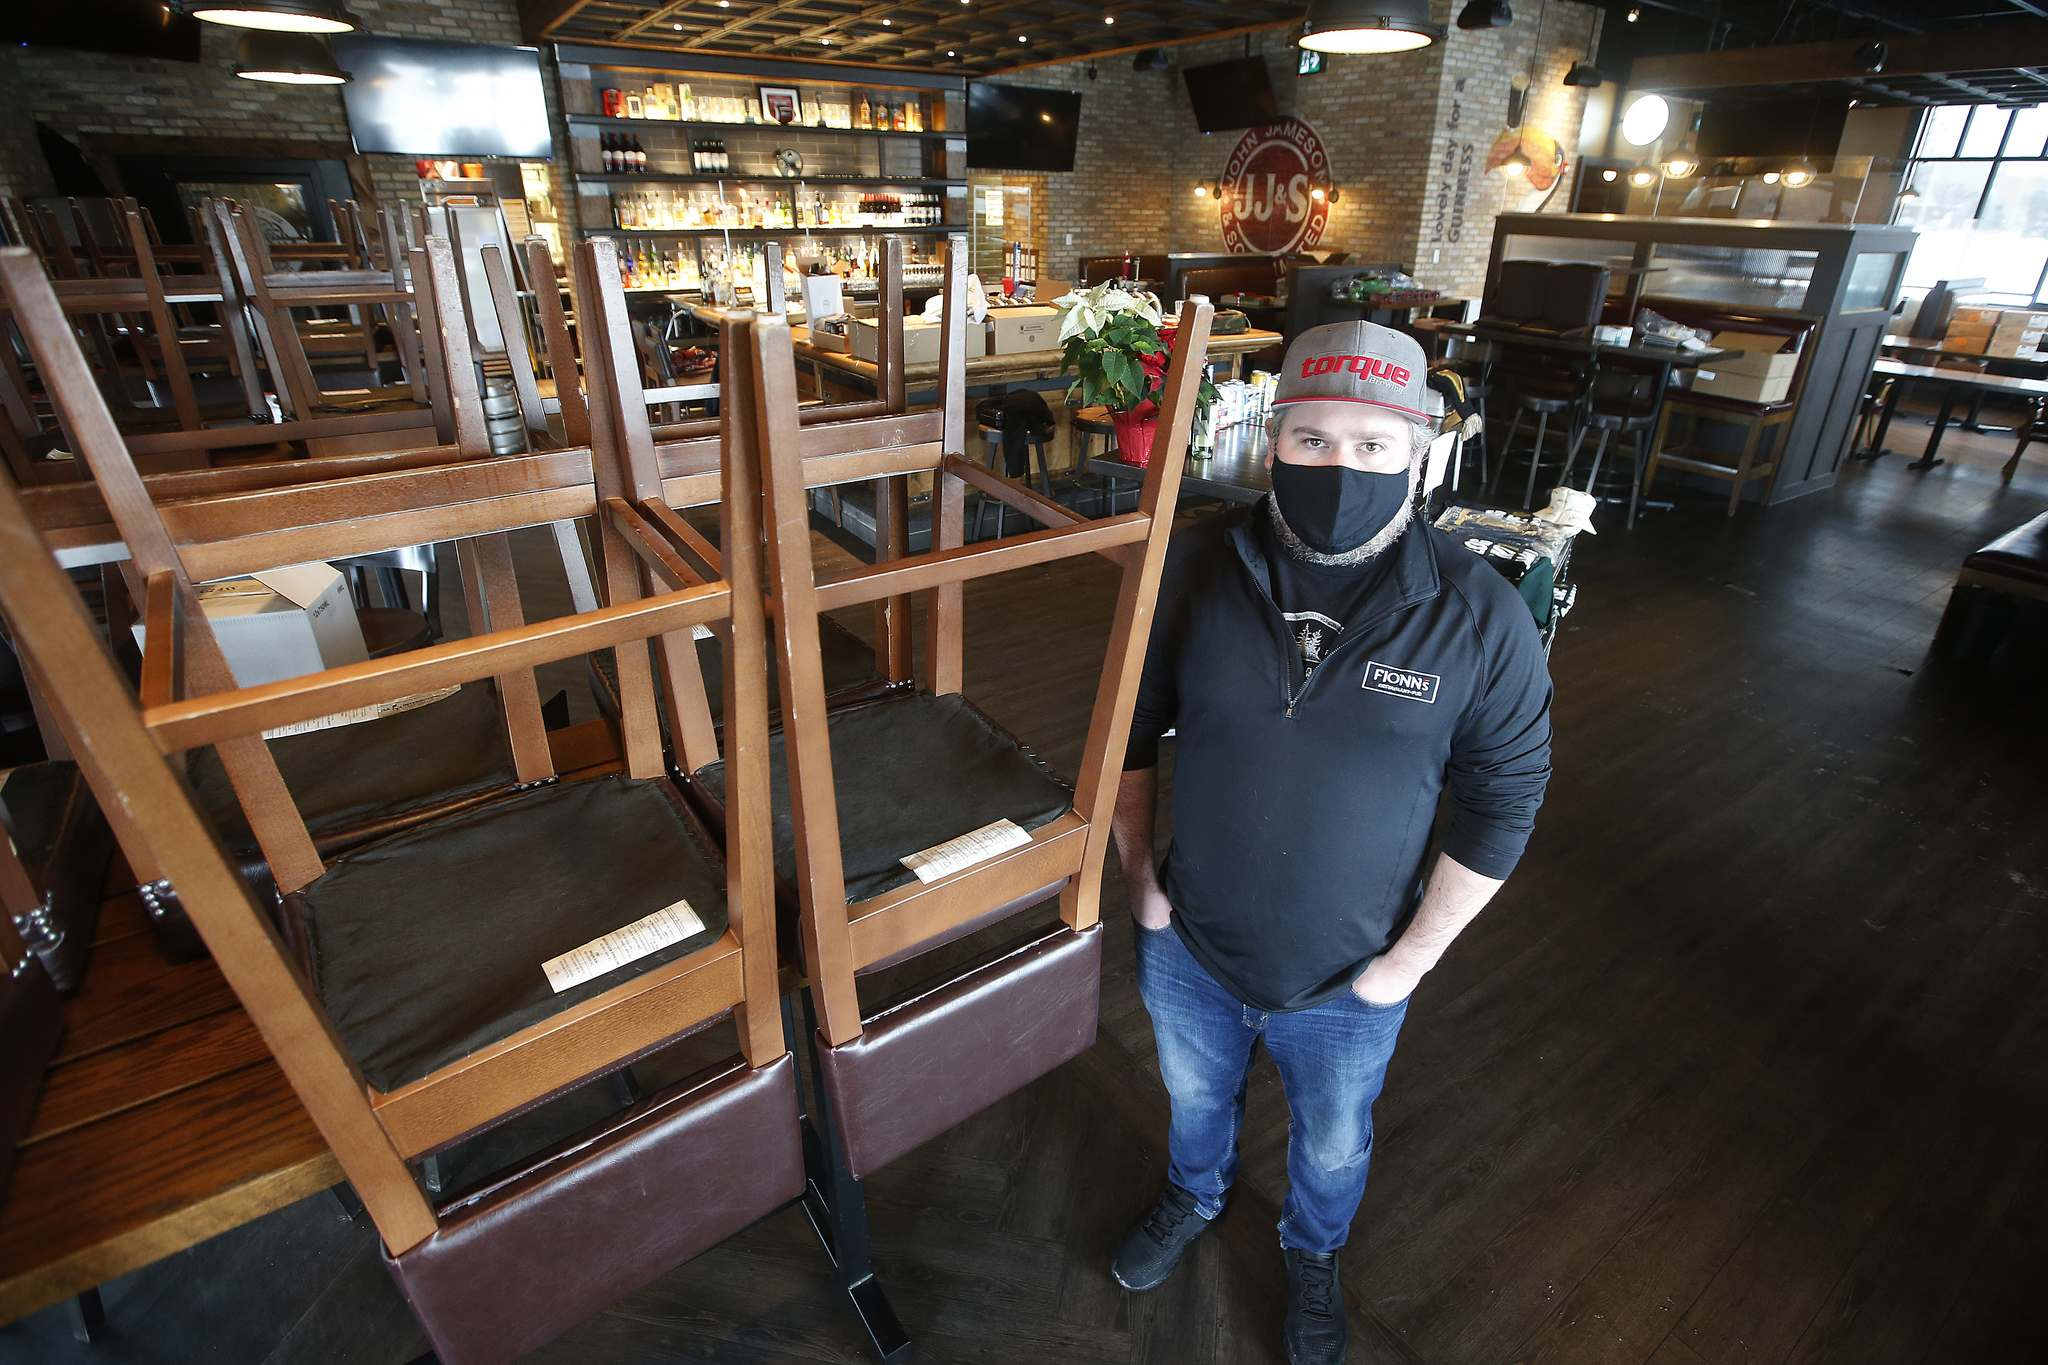 Jay Kilgour, owner of Fionn MacCool's, says relief from the high costs of delivery apps, which is responsible for 65 per cent of his two restaurant's sales, is welcome. (John Woods / Winnipeg Free Press)